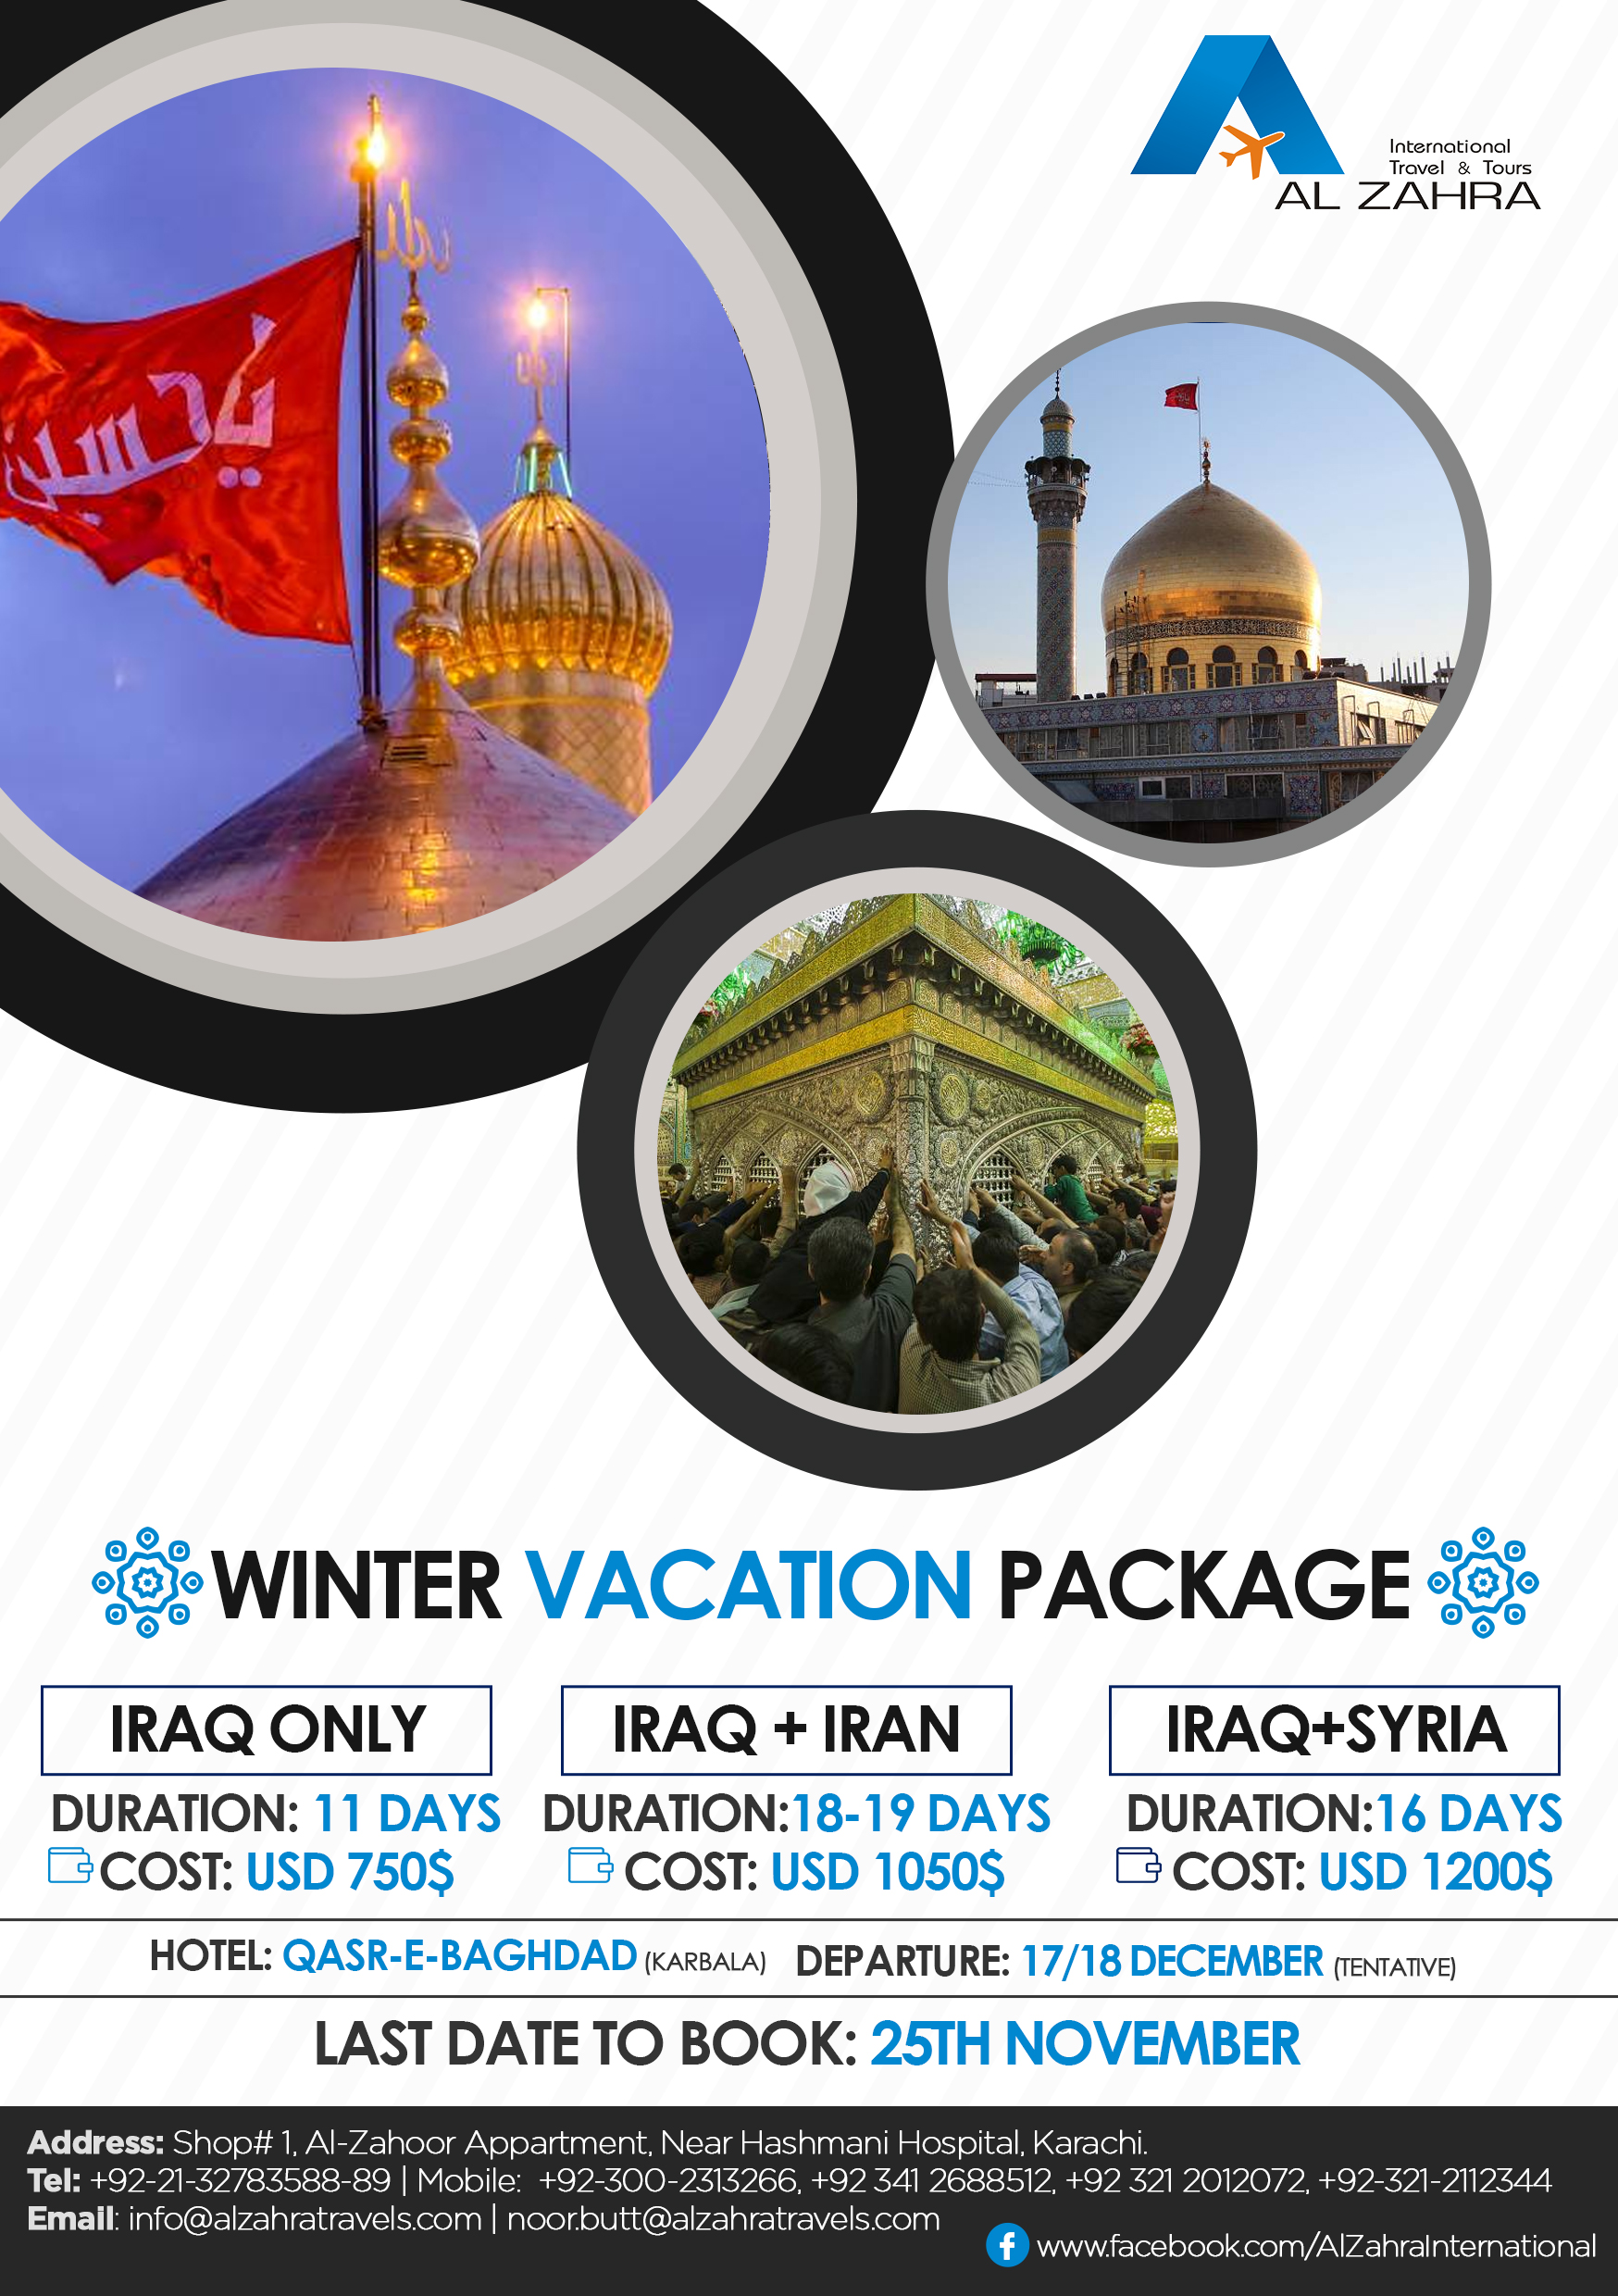 Winter vacation package by al zahra travels for Best winter vacation deals